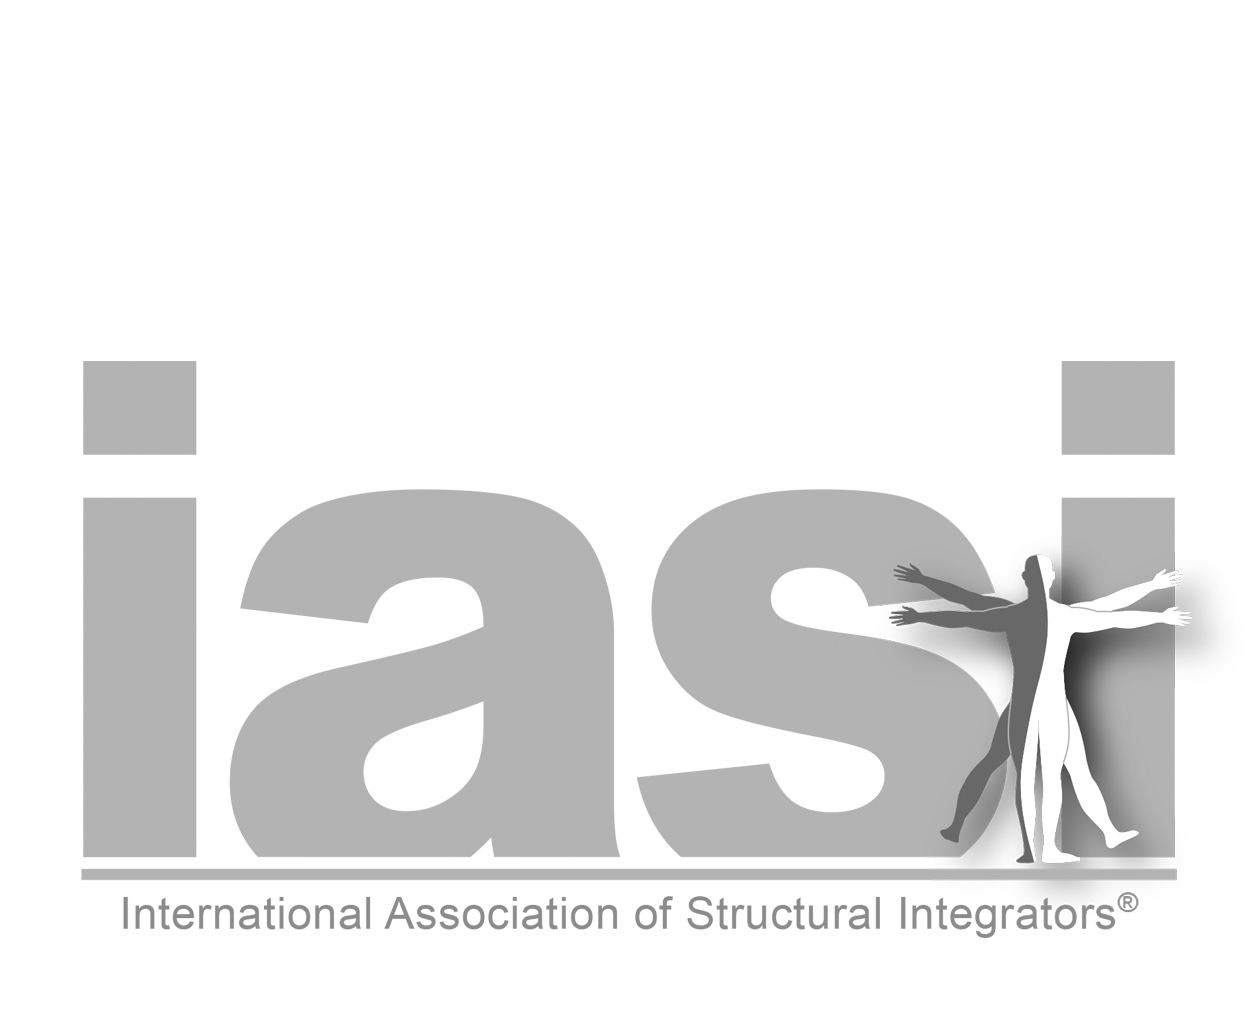 International Association of Structural Integration